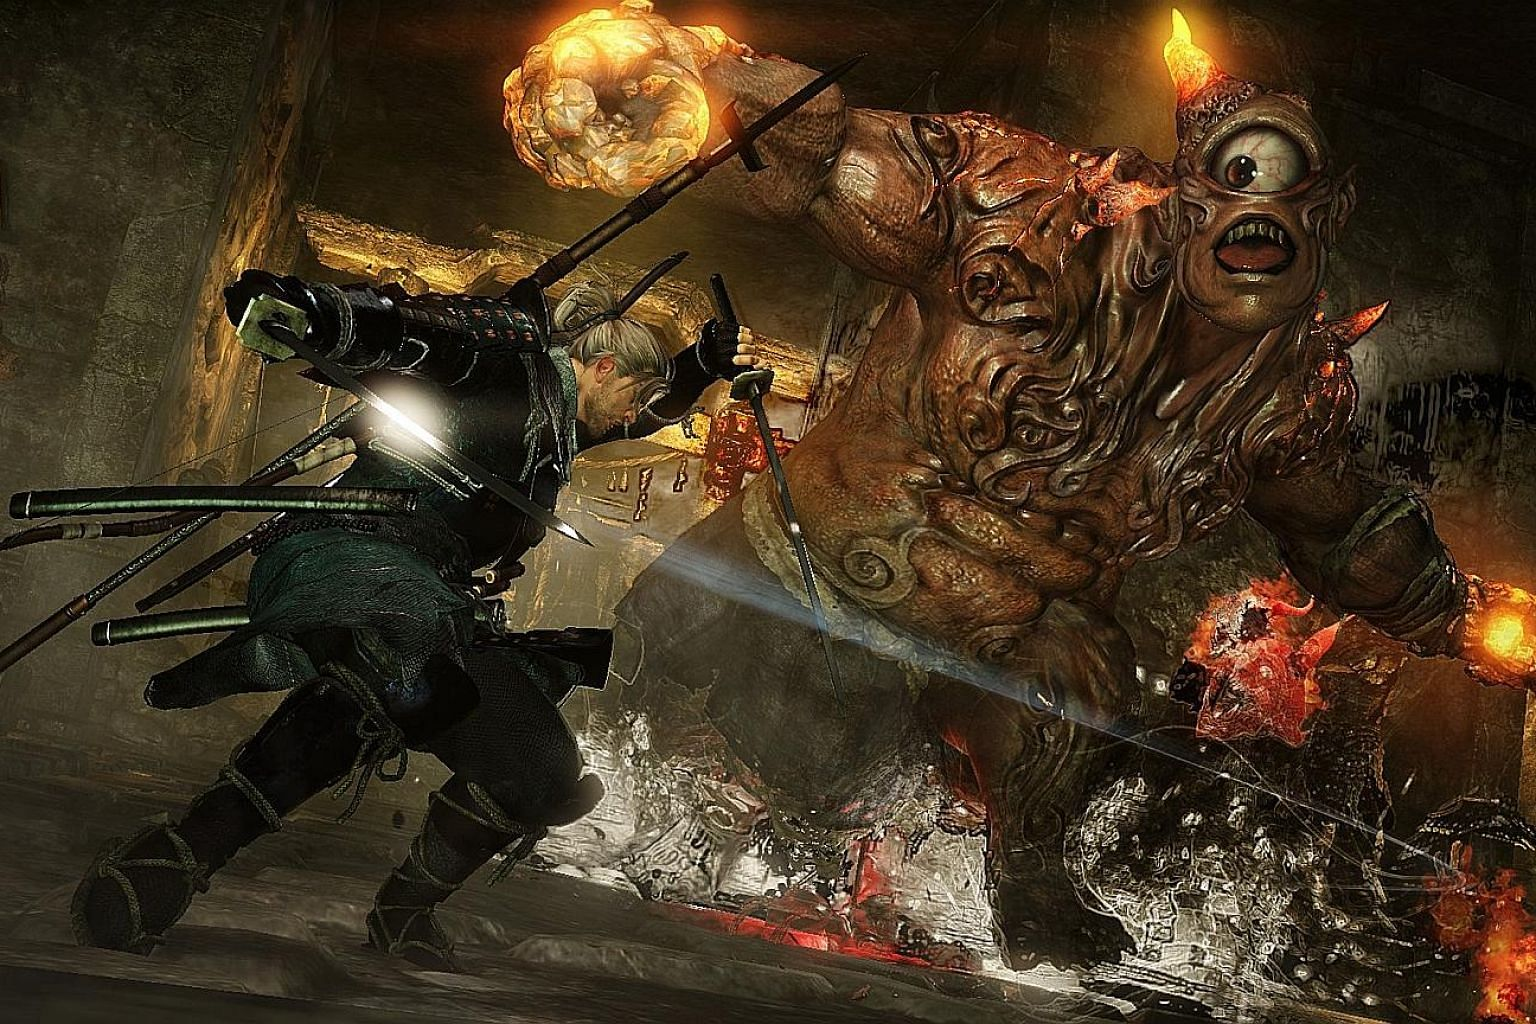 The bosses in Nioh are less scary but just as tough to beat as those in Souls games.